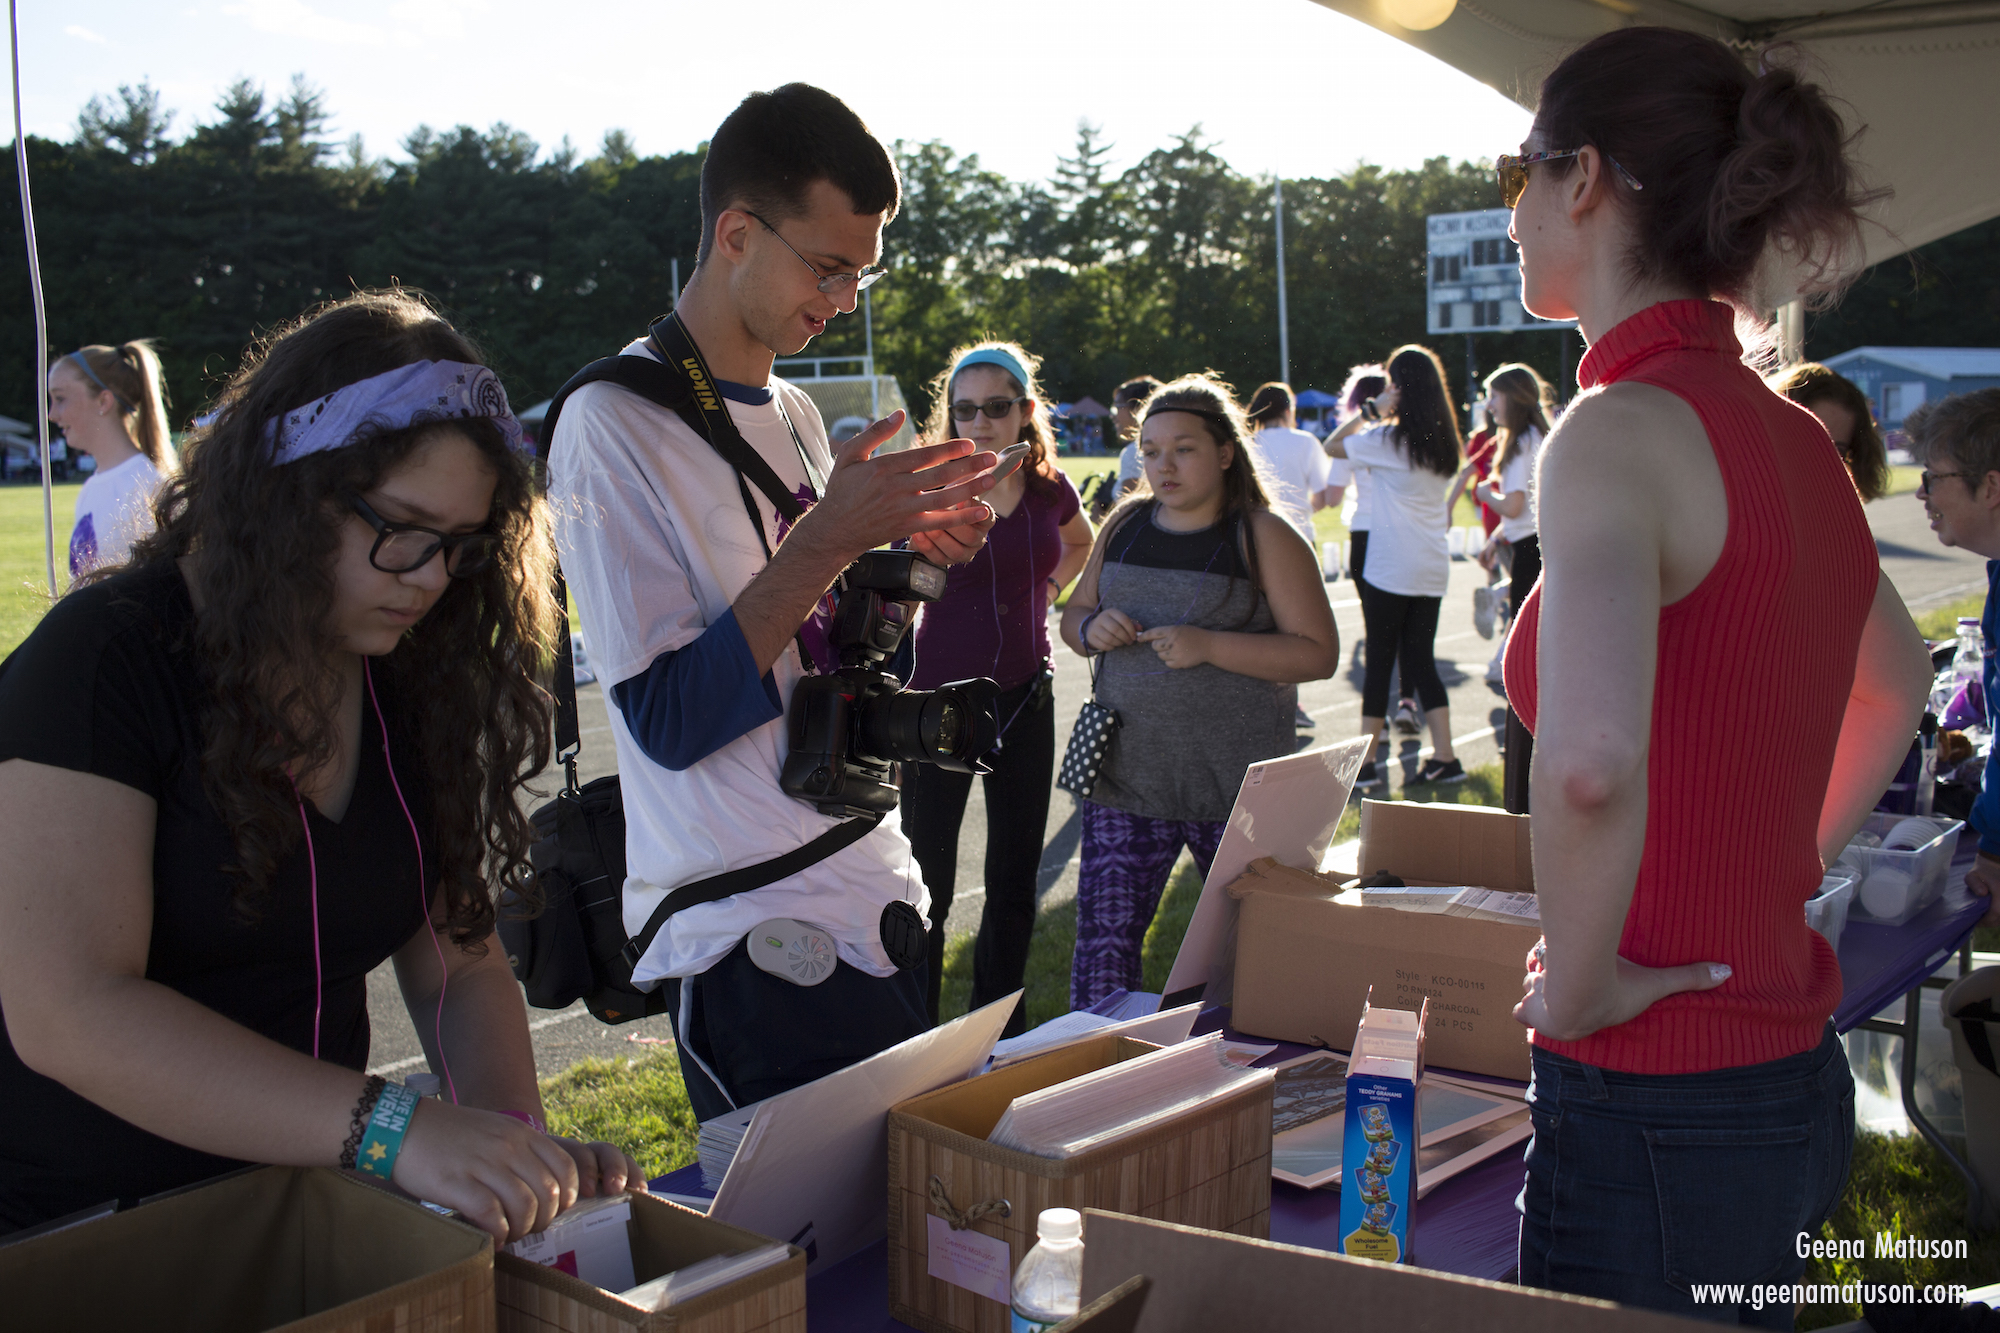 Peter J. Willis and Geena Matuson at Relay for Life in Medway, MA 2016. Photography by Joe Musacchia.